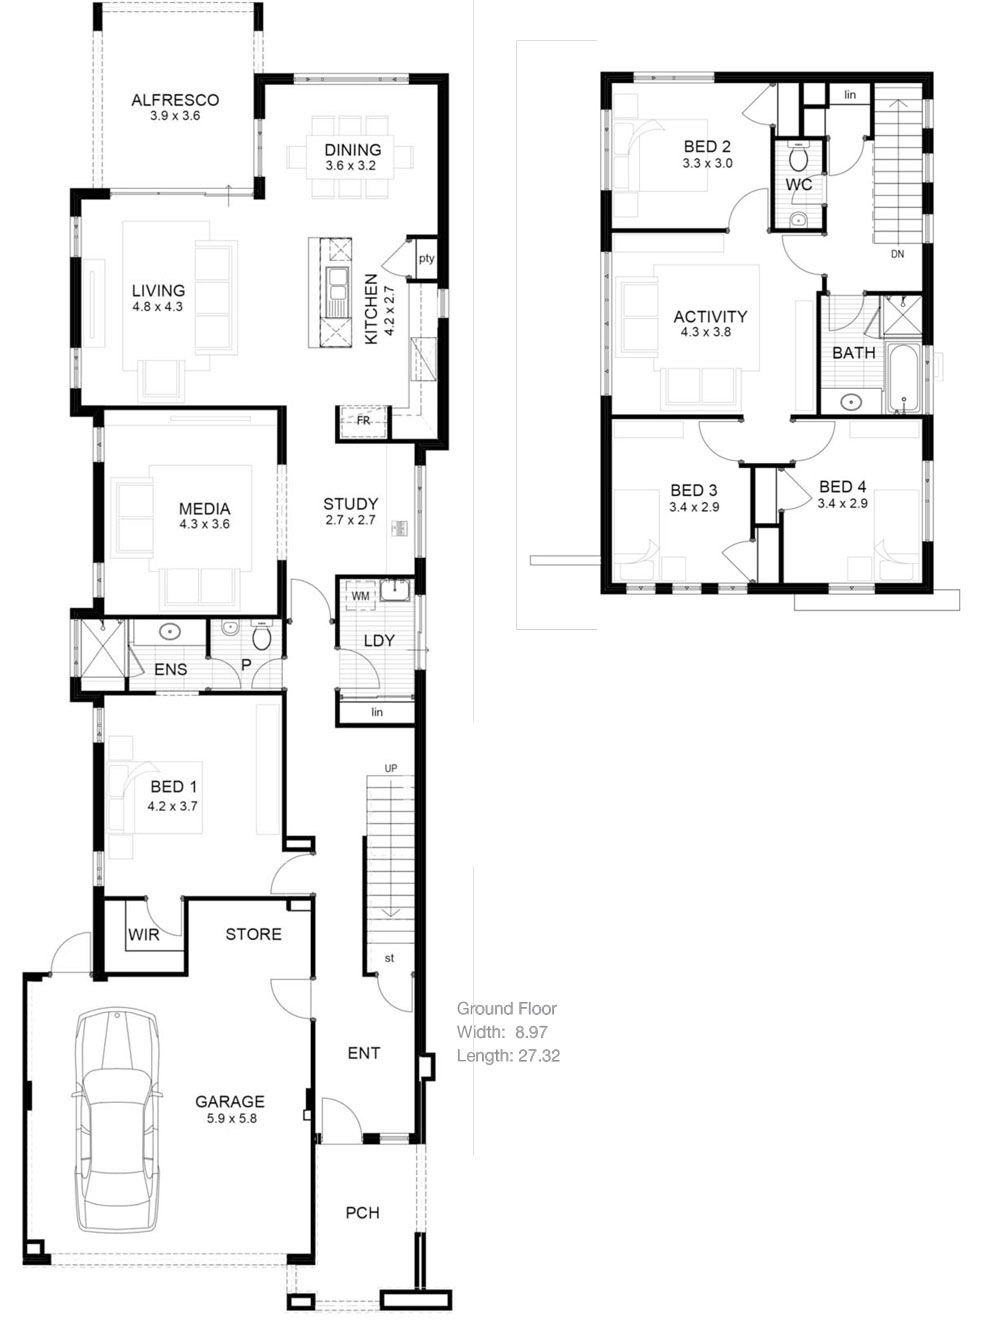 Lot narrow plan house designs craftsman narrow lot house plans decoration pinterest - Narrow house plans for narrow lots pict ...